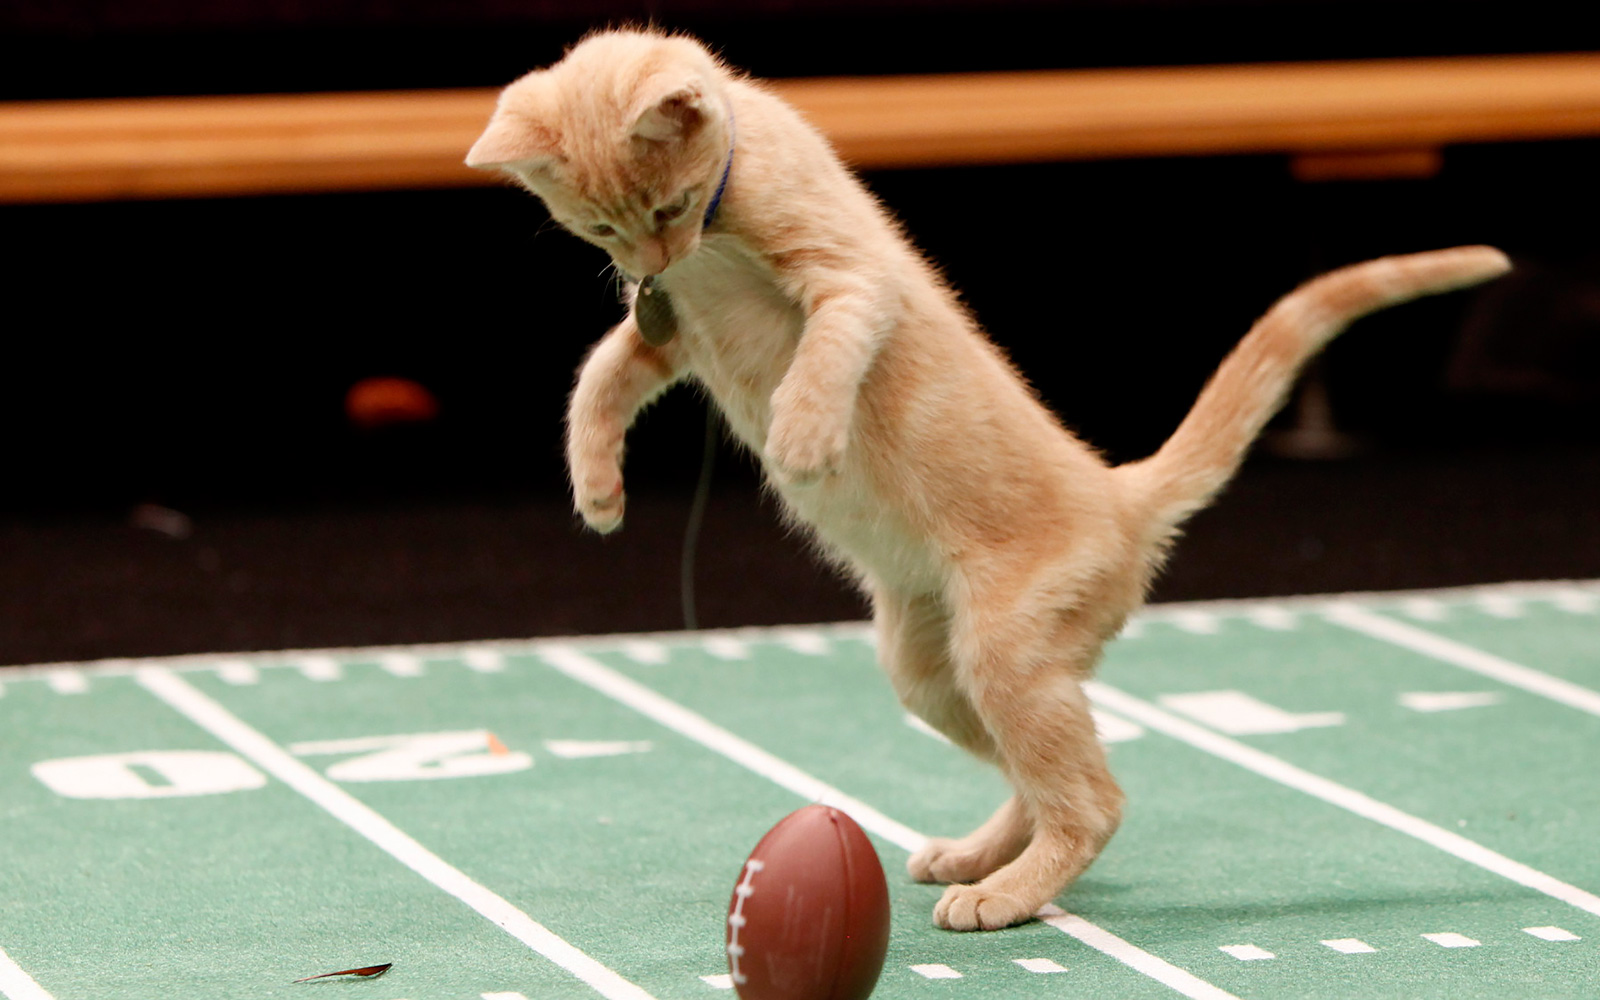 Tune in on SuperBowl Sunday for the Kitten Bowl on Hallmark Channel